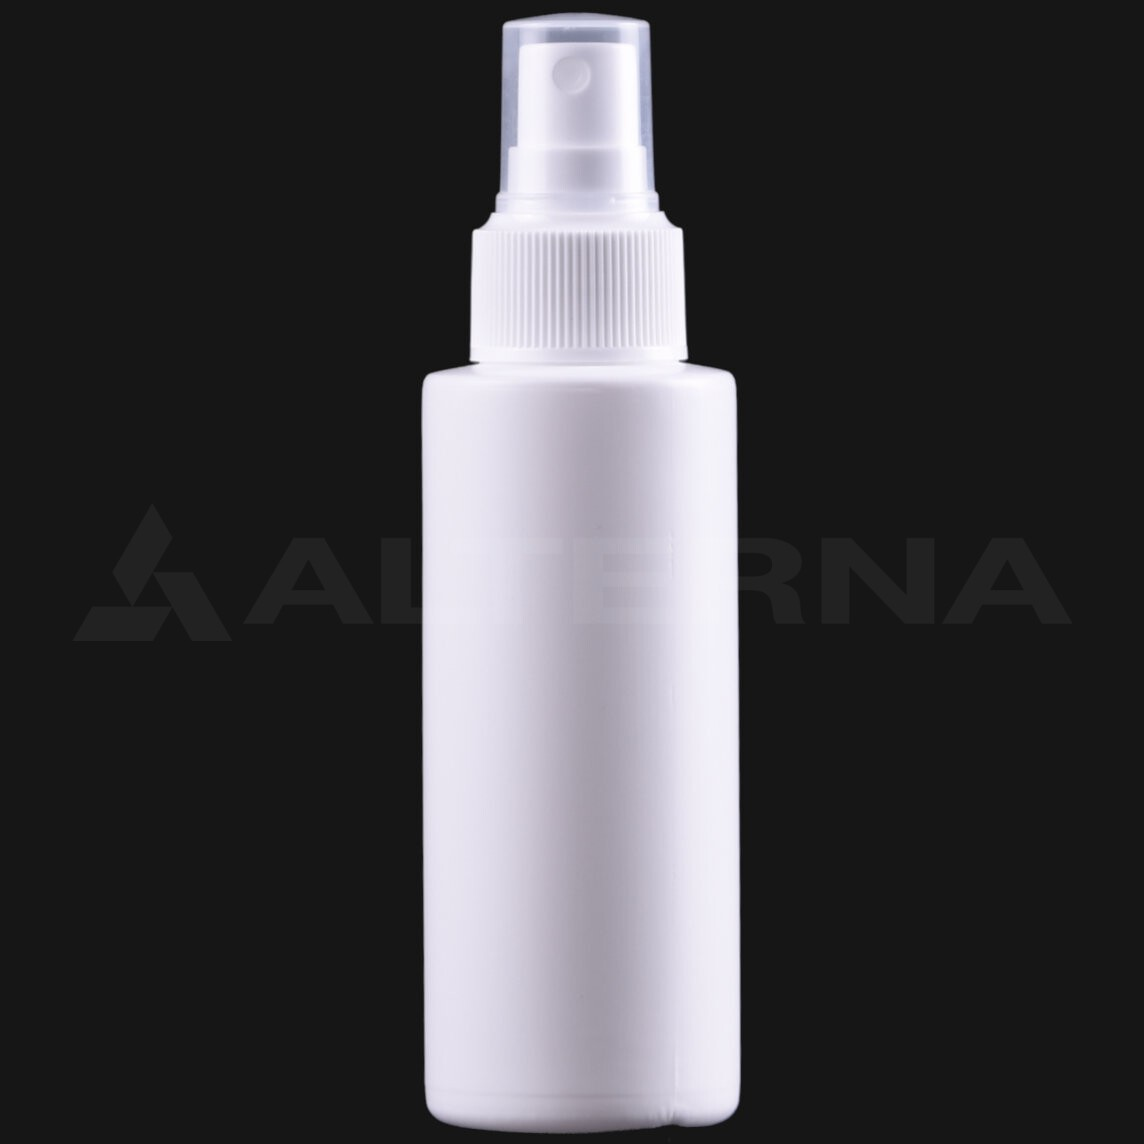 120 ml HDPE Bottle with 24 mm Sprayer